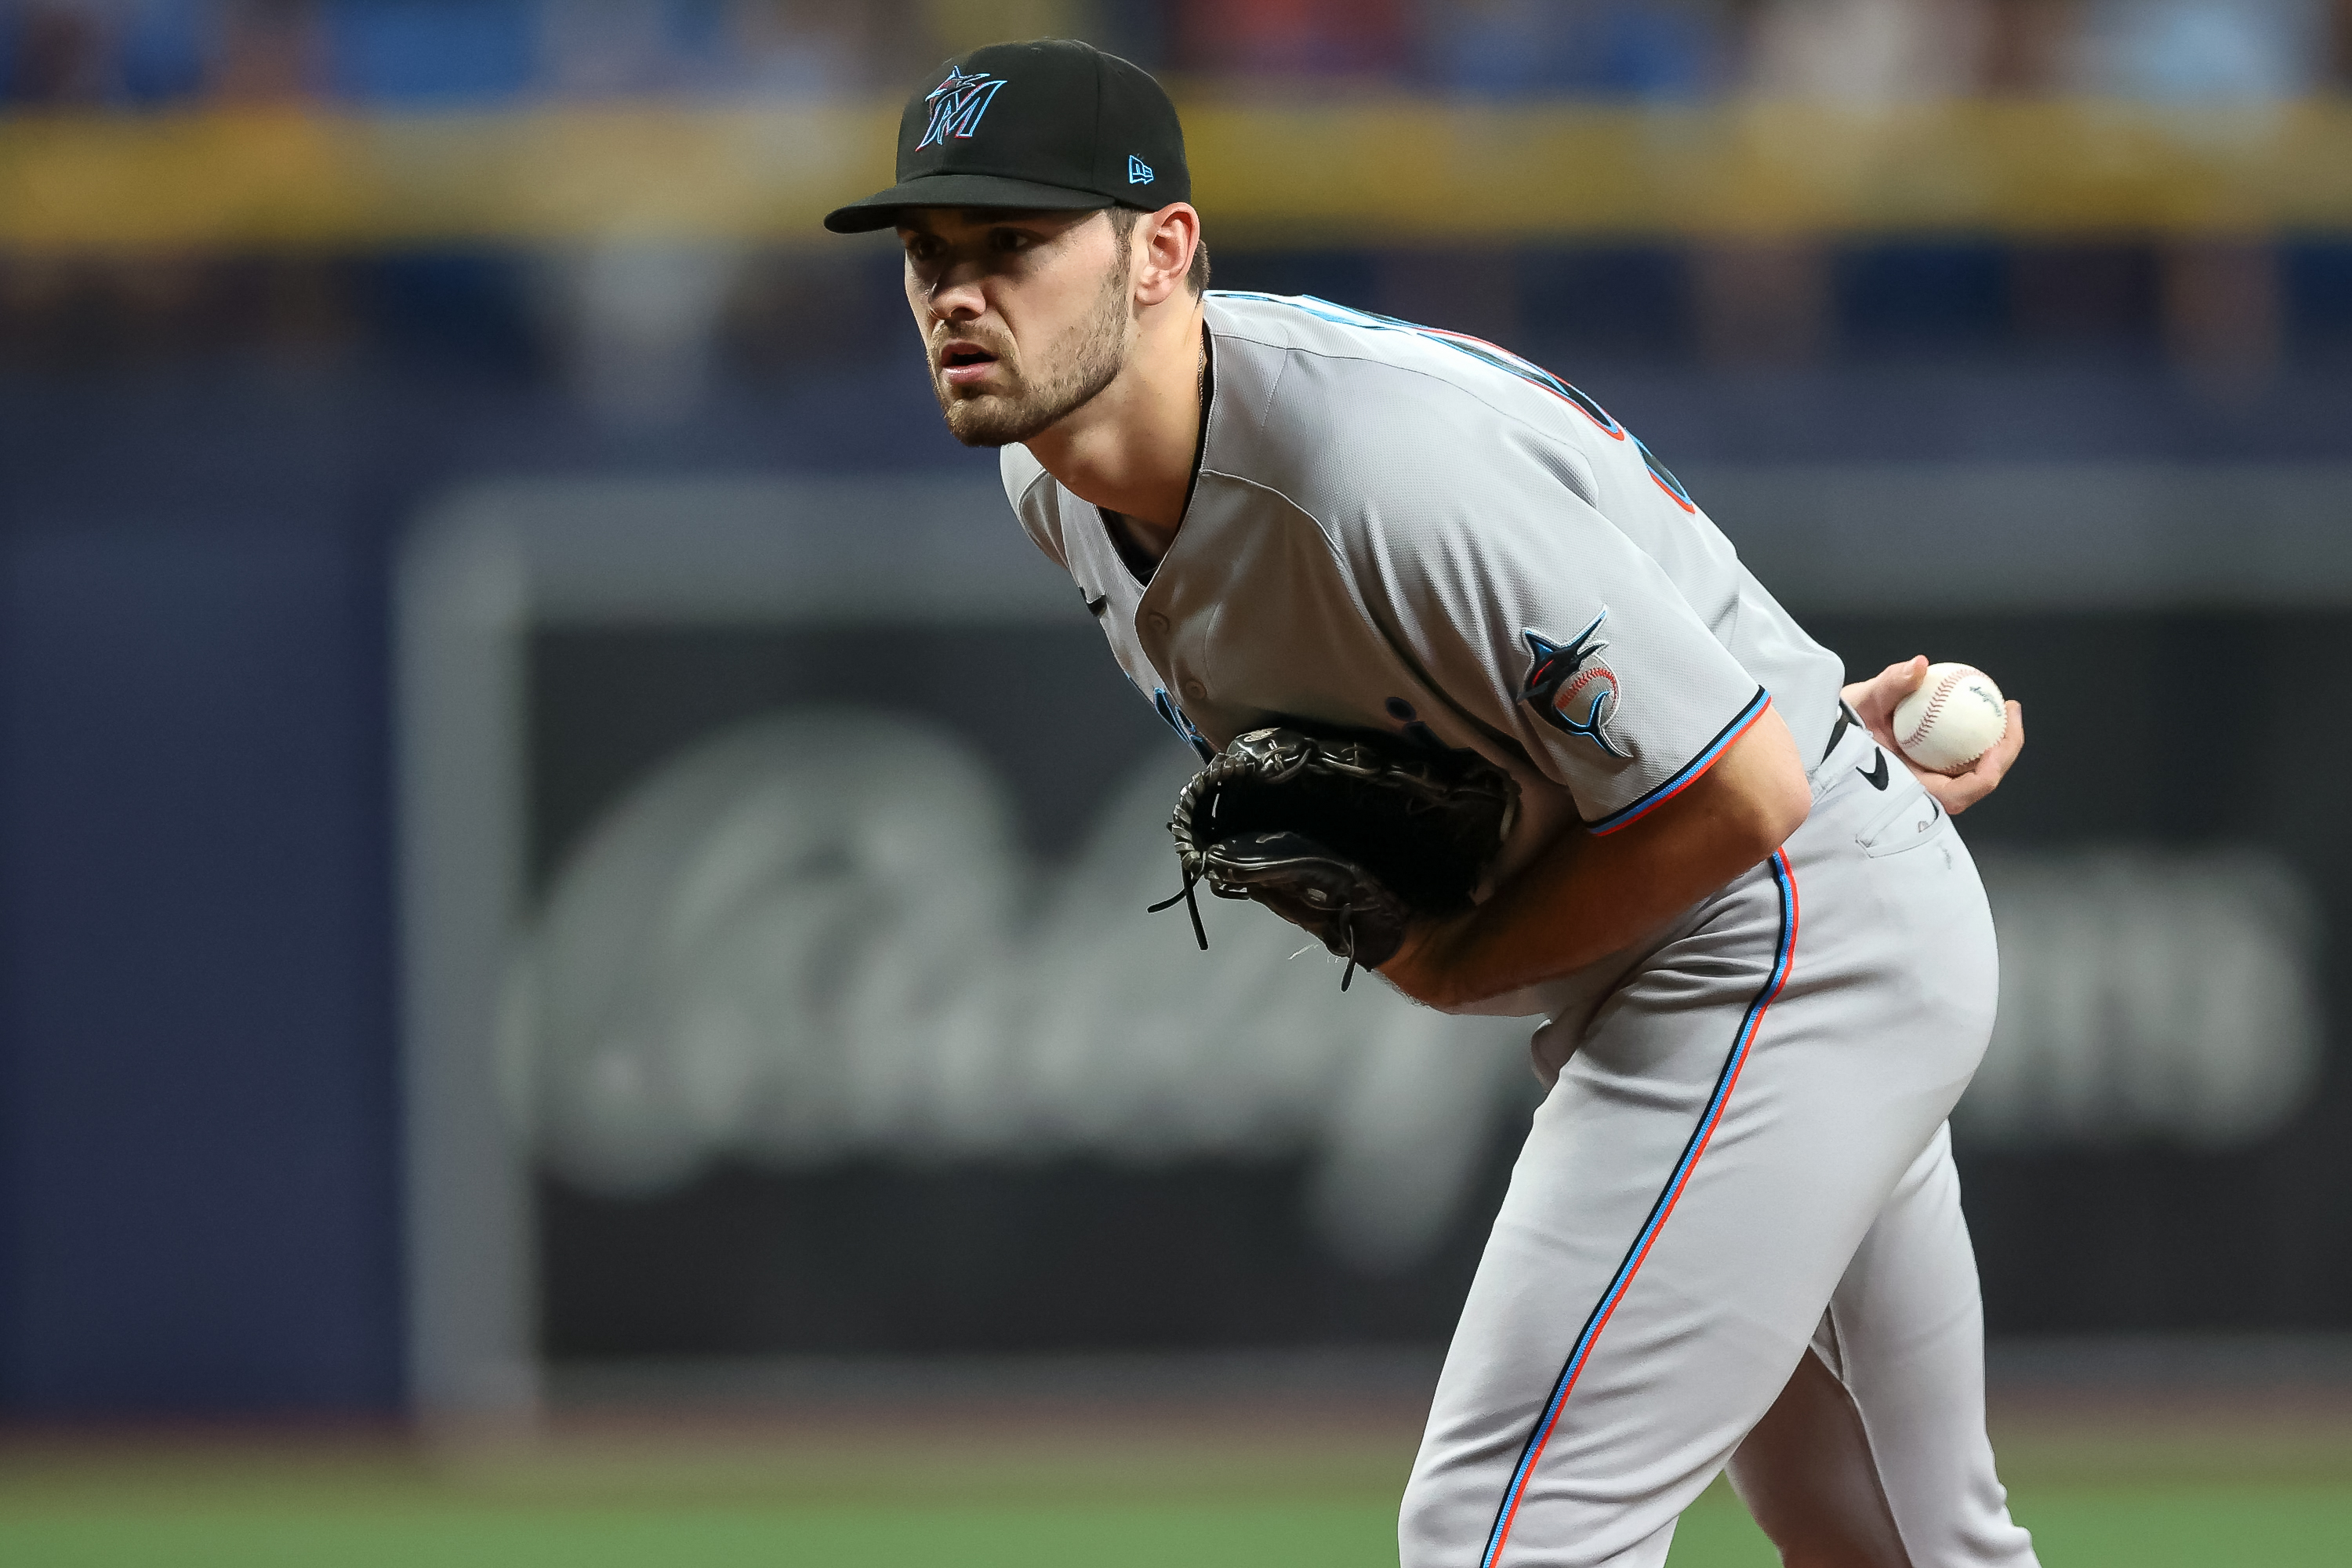 Zach Pop #56 of the Miami Marlins throws against the Tampa Bay Rays in the seventh inning of a baseball game at Tropicana Field